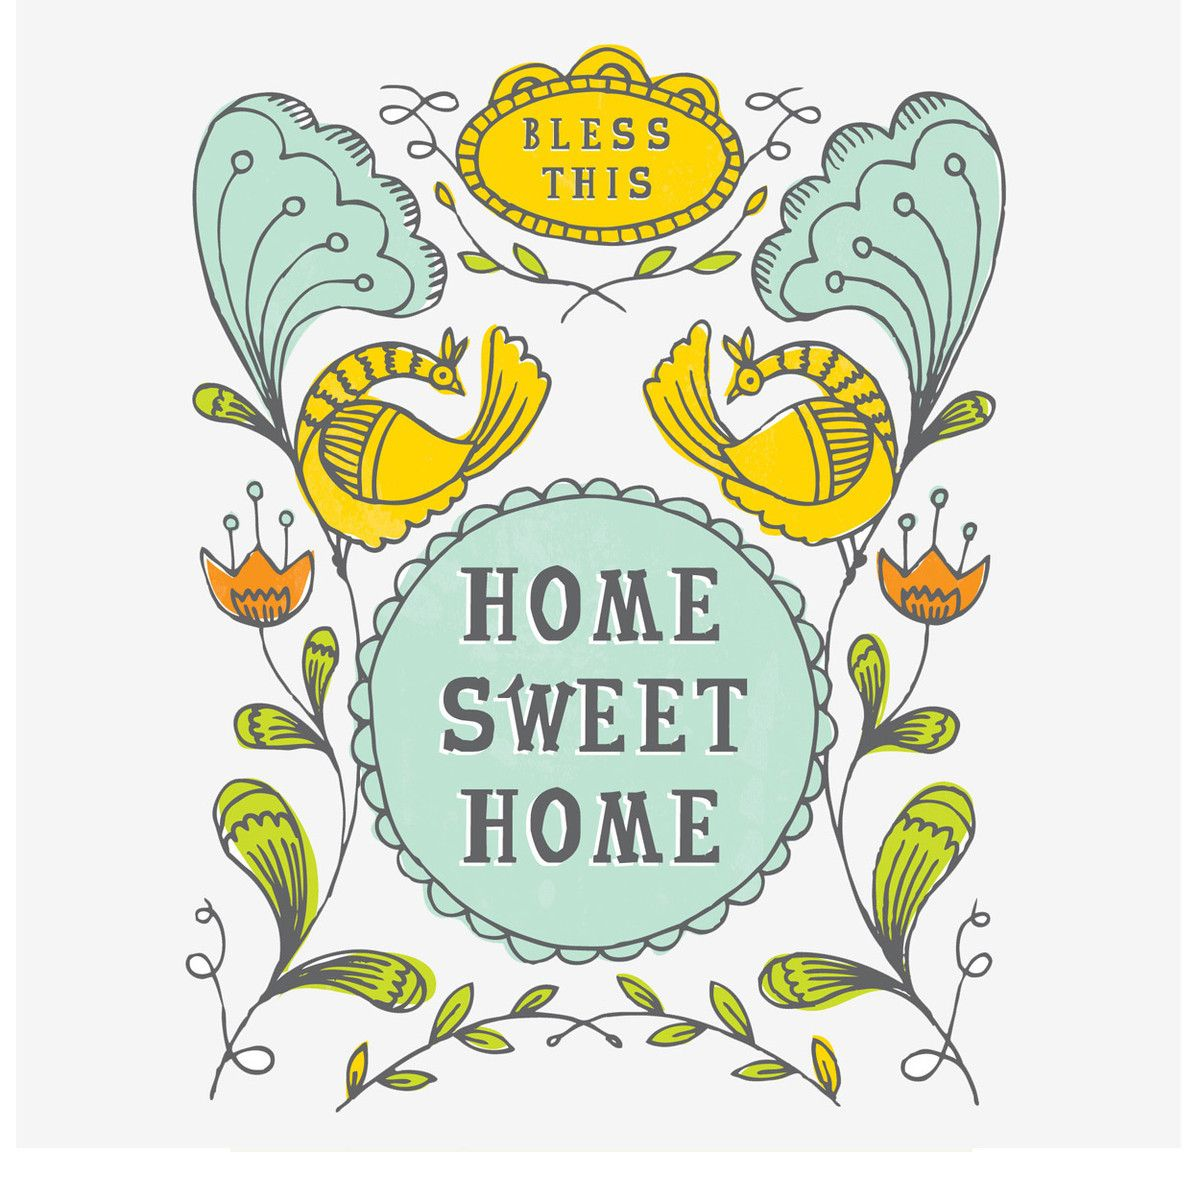 Bless This Home Sweet Home Print  by Spread The Love